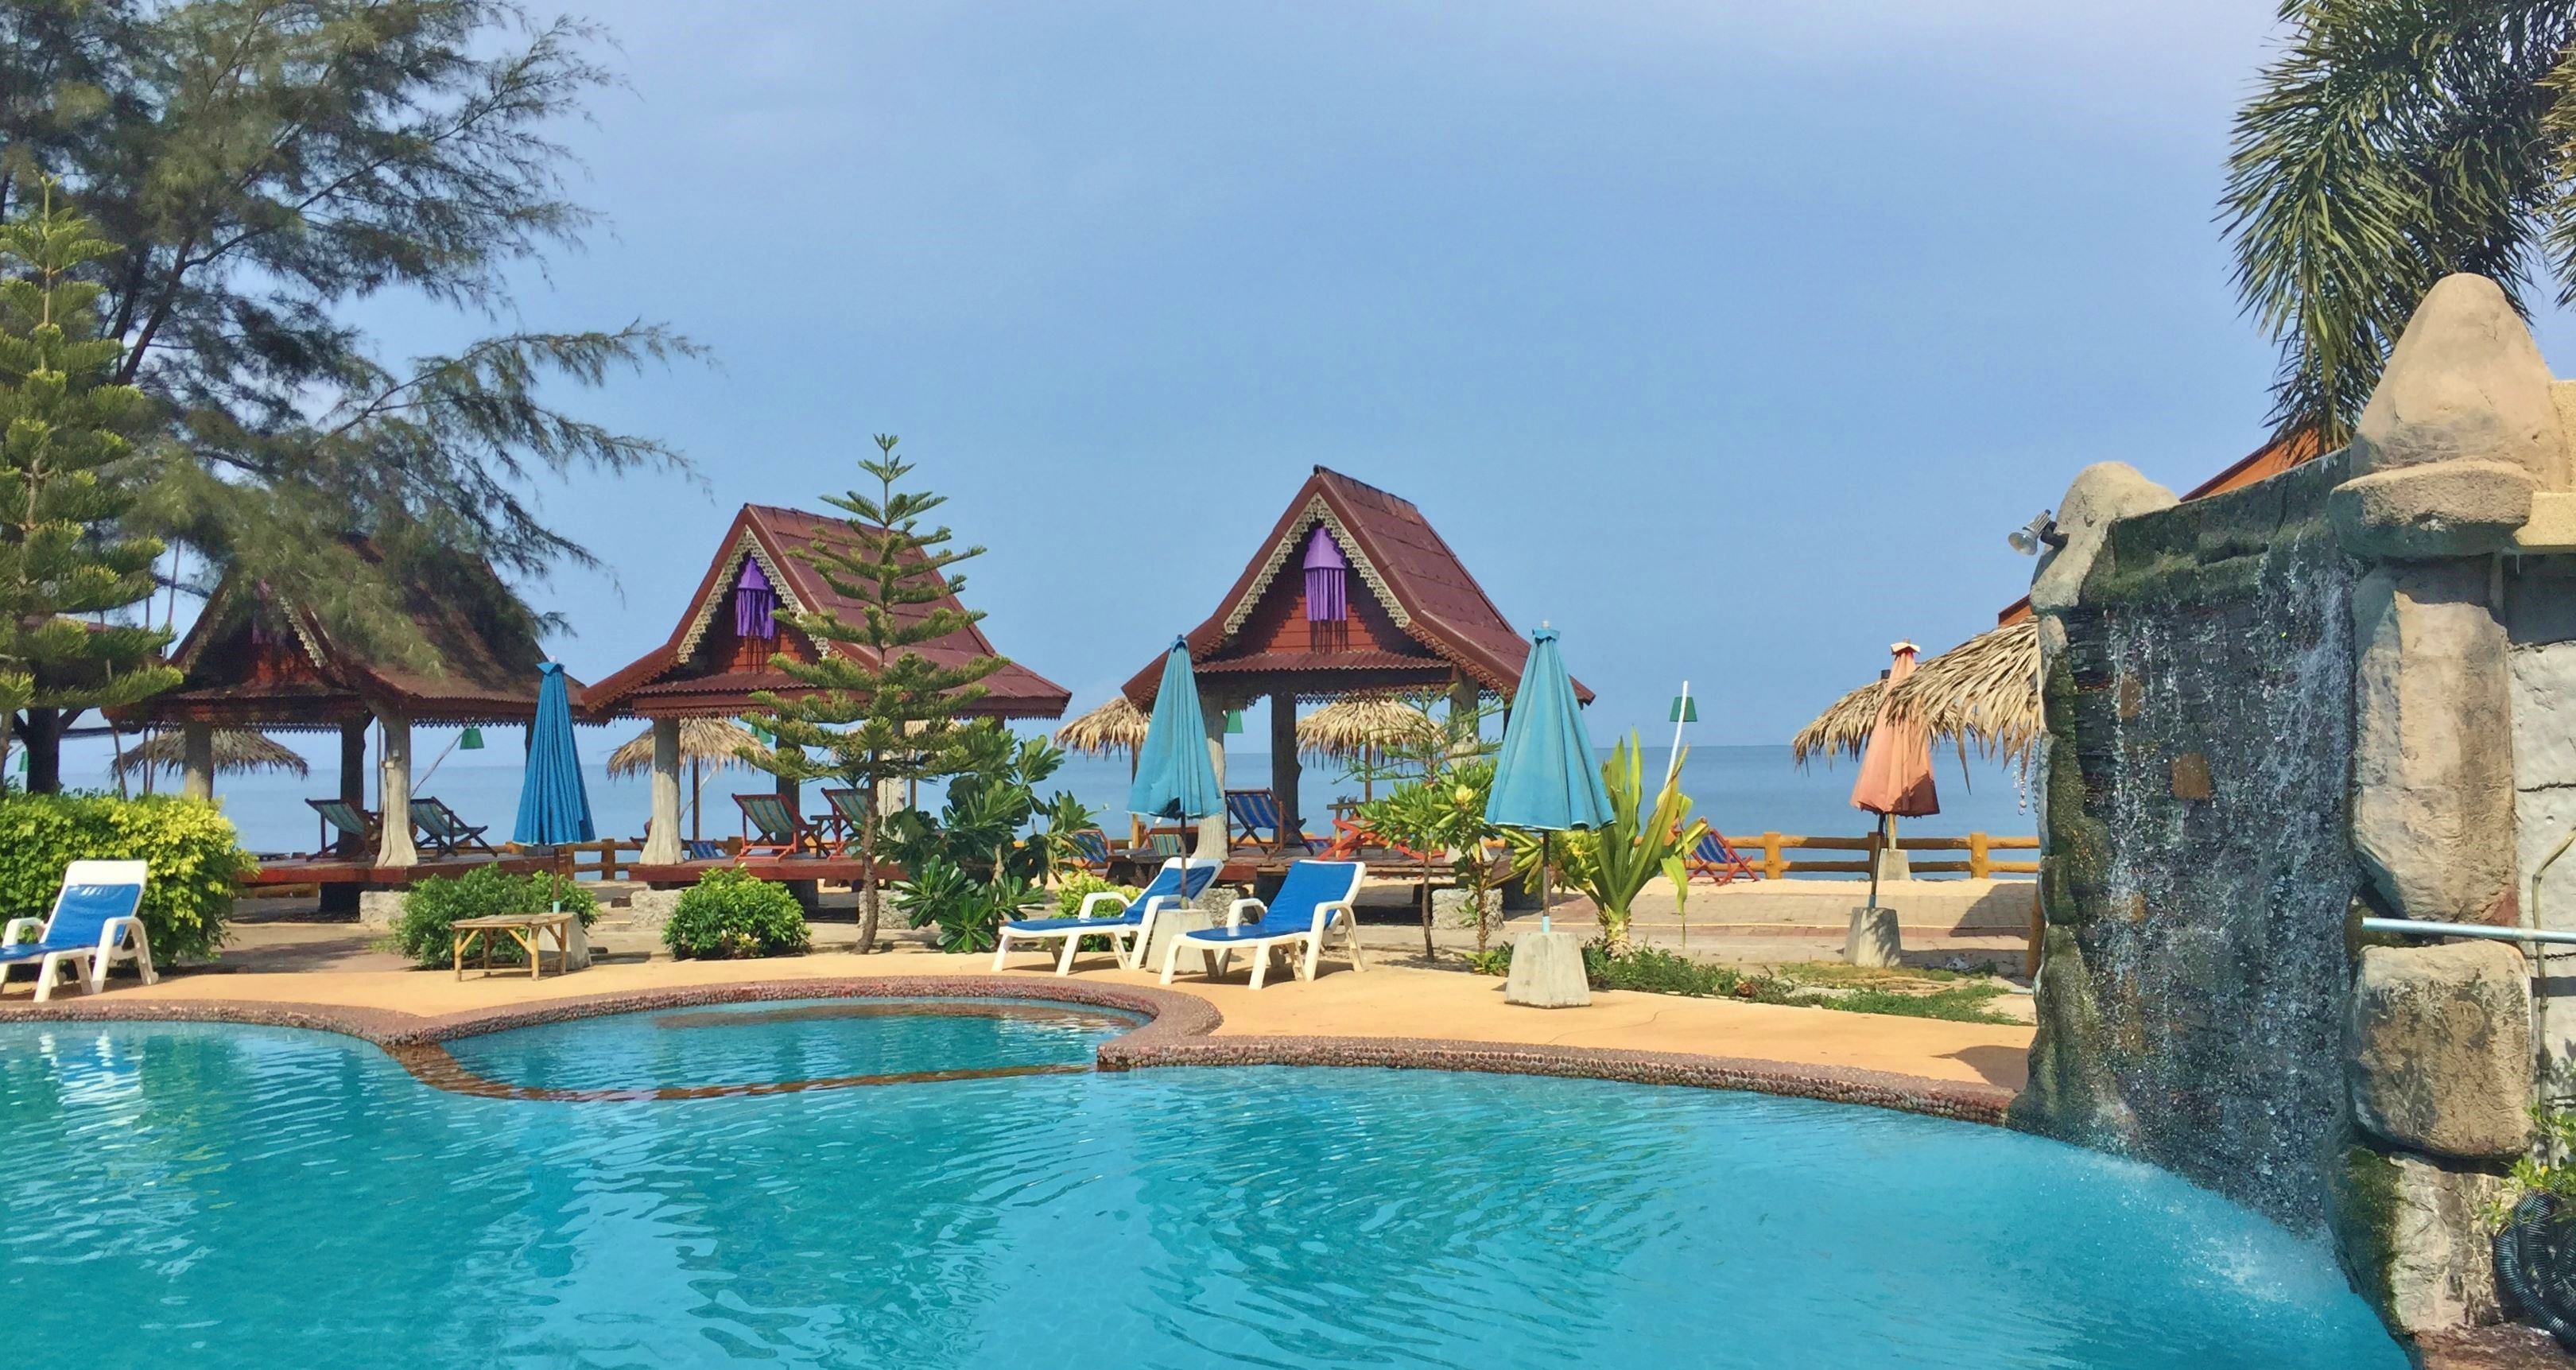 Koh Lanta Blue Andaman beach hotel based at Klong Khong